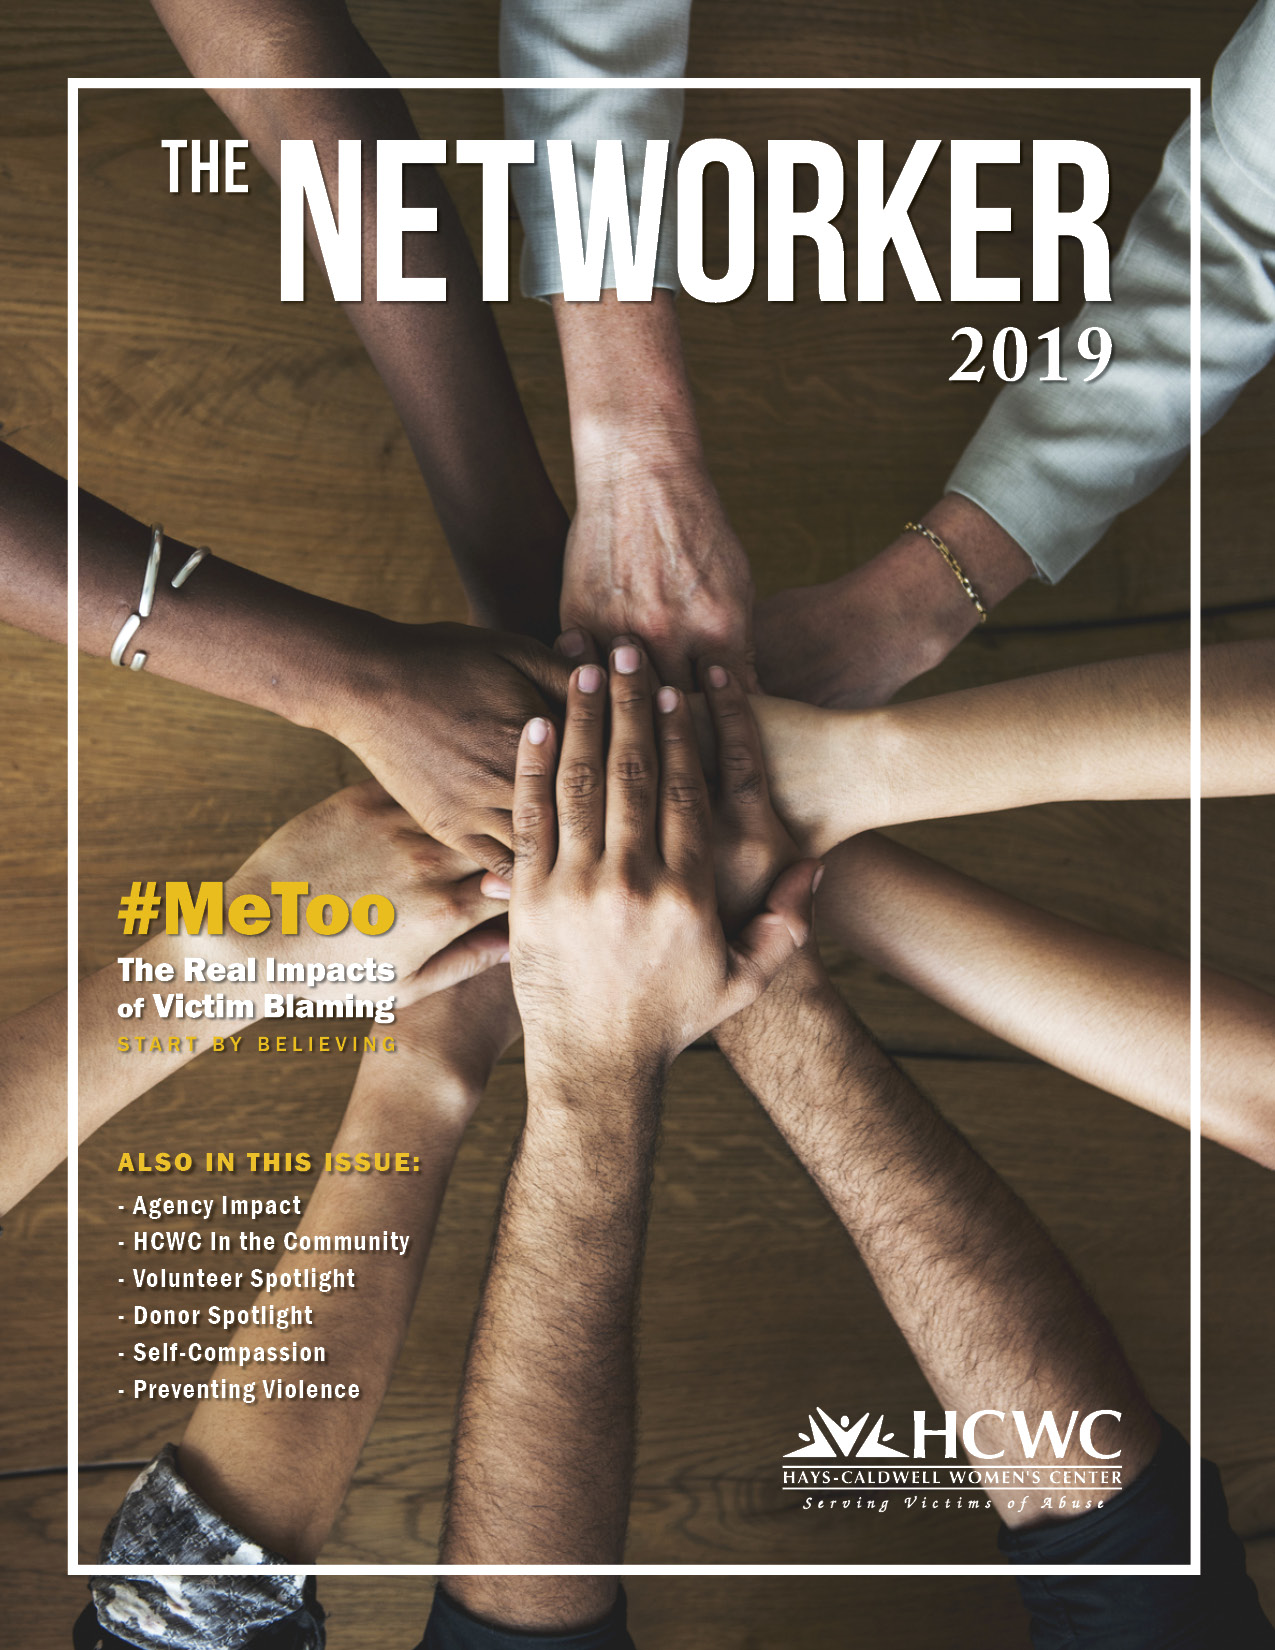 The Networker